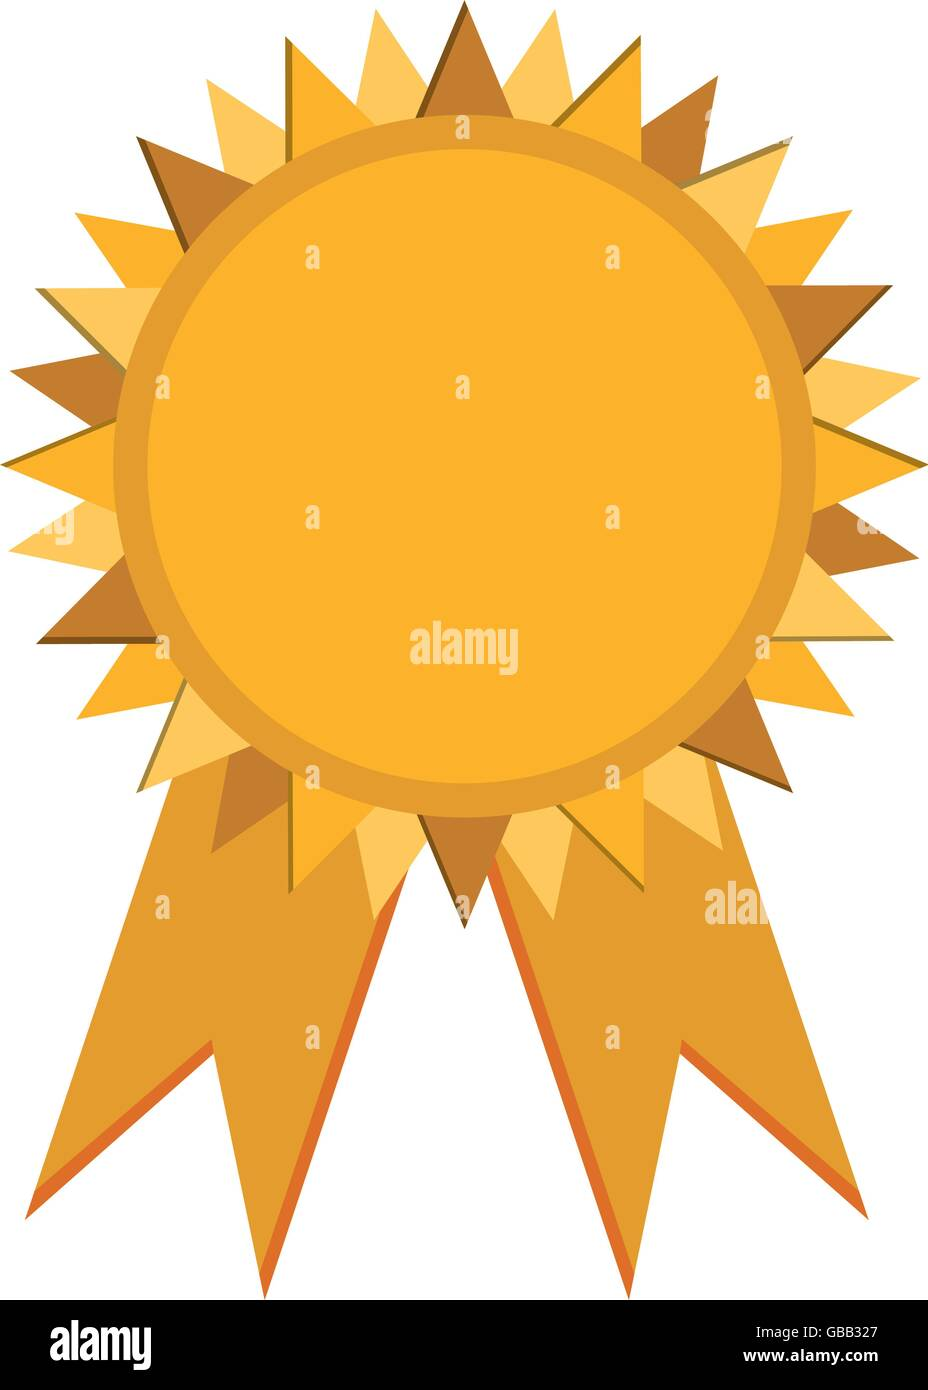 prize badge with ribbons icon - Stock Image